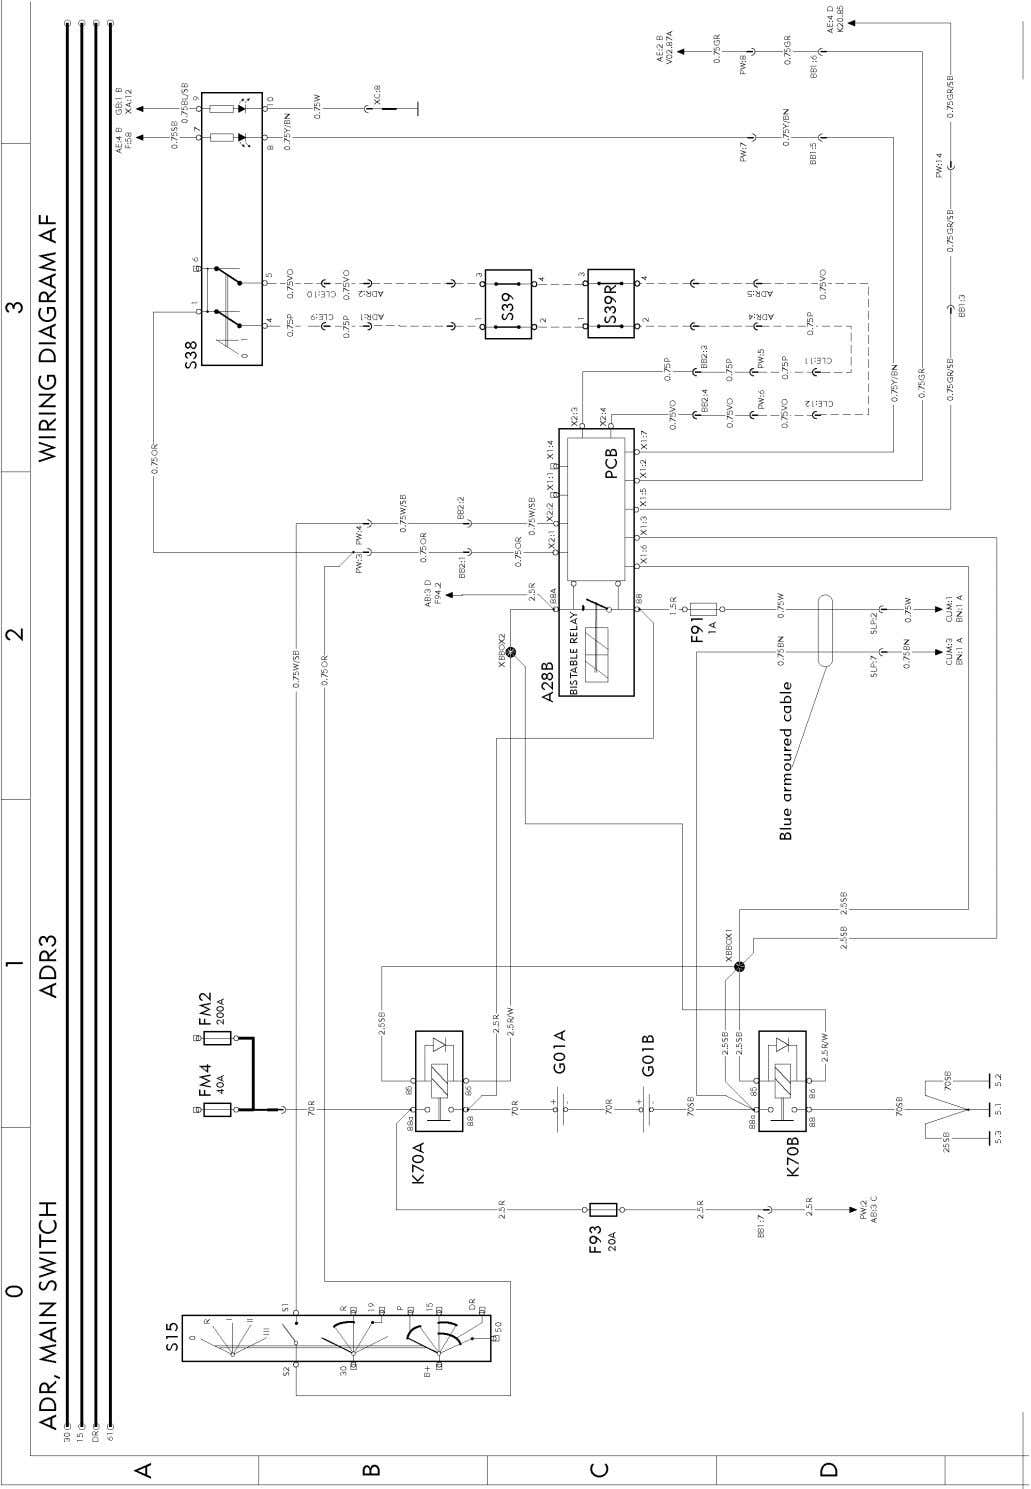 T3021997 Wiring diagram Page 11 (298)